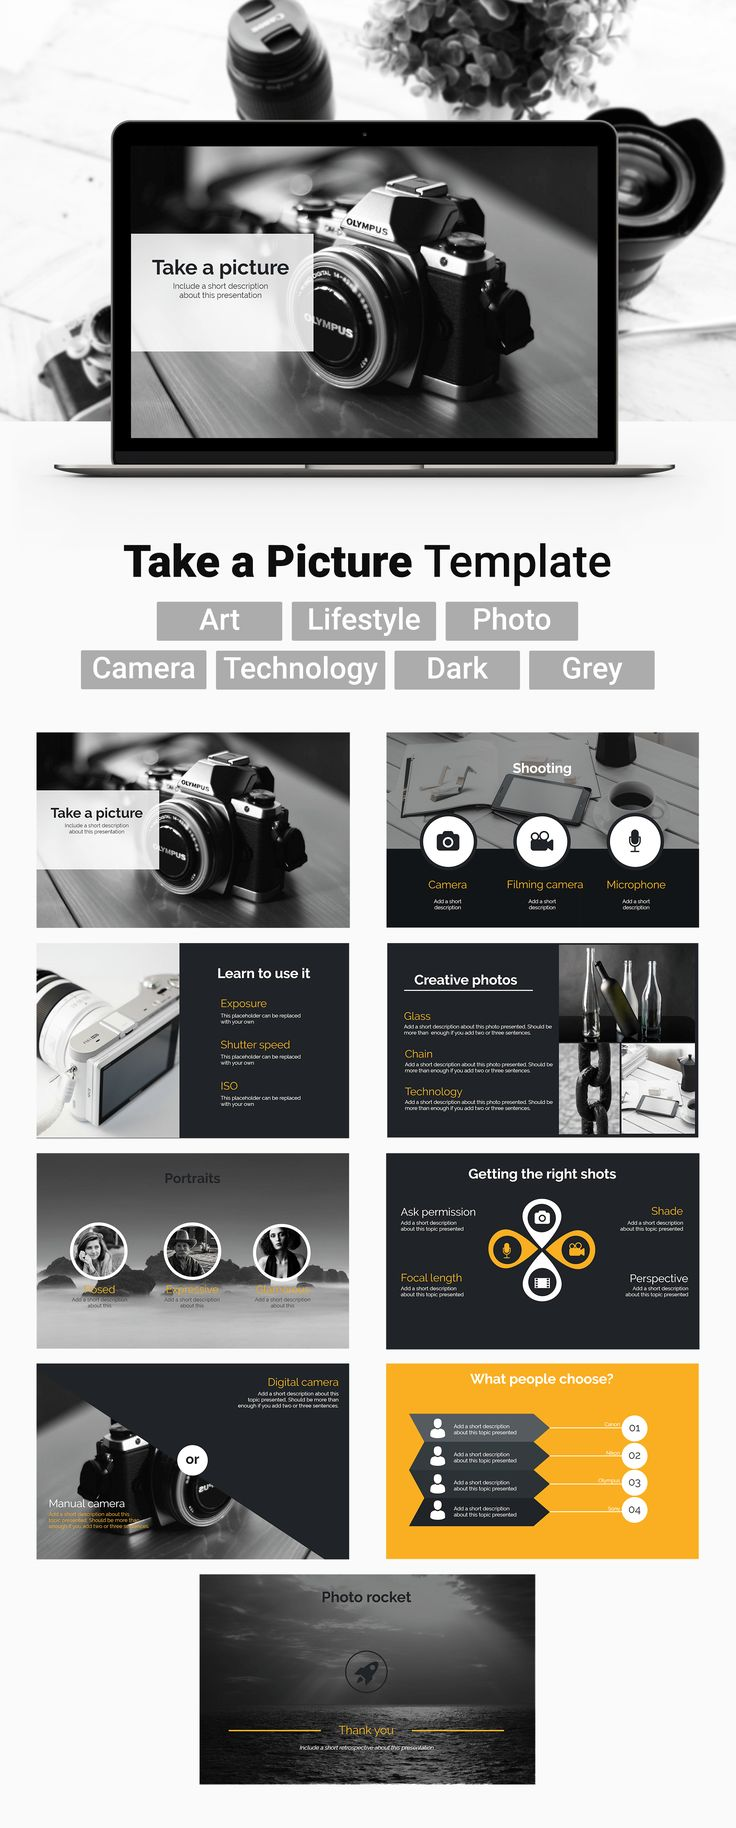 This template Thursday it's all about your passion for #photography. 'Take a picture', add it on a slide and share it with the world.